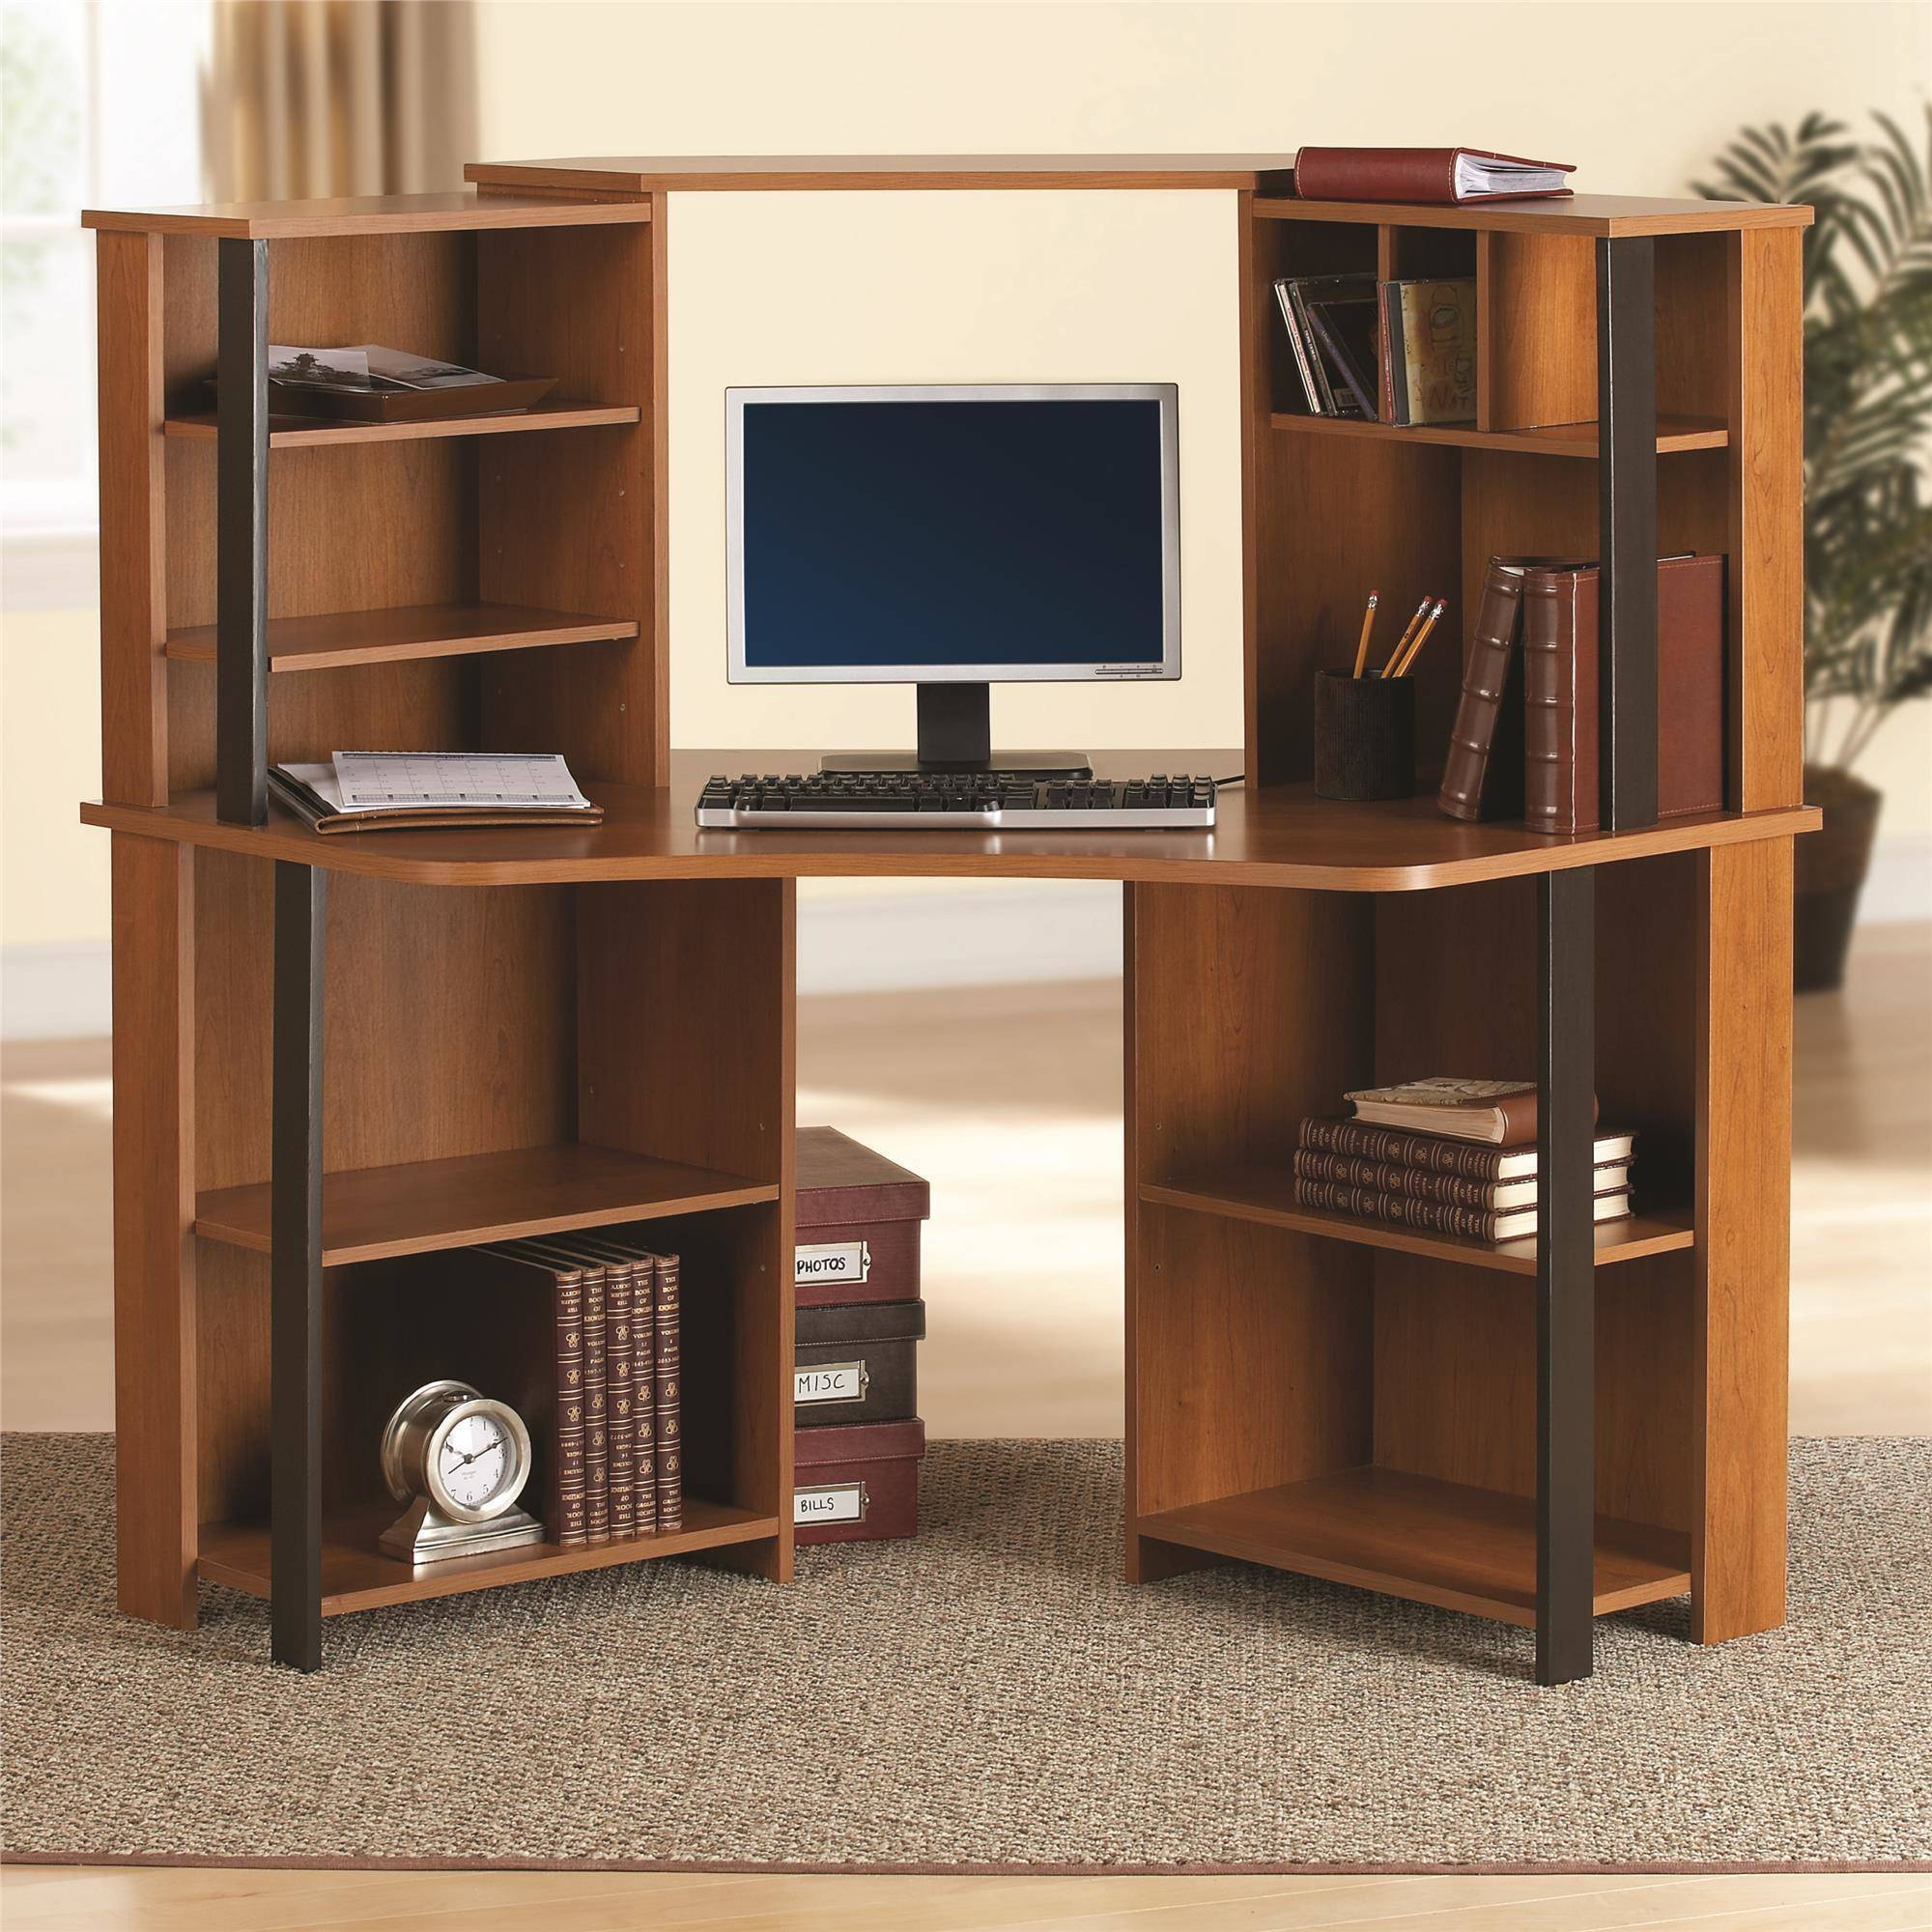 - Computer Table With A Corner Rack (18 Photos): Features And